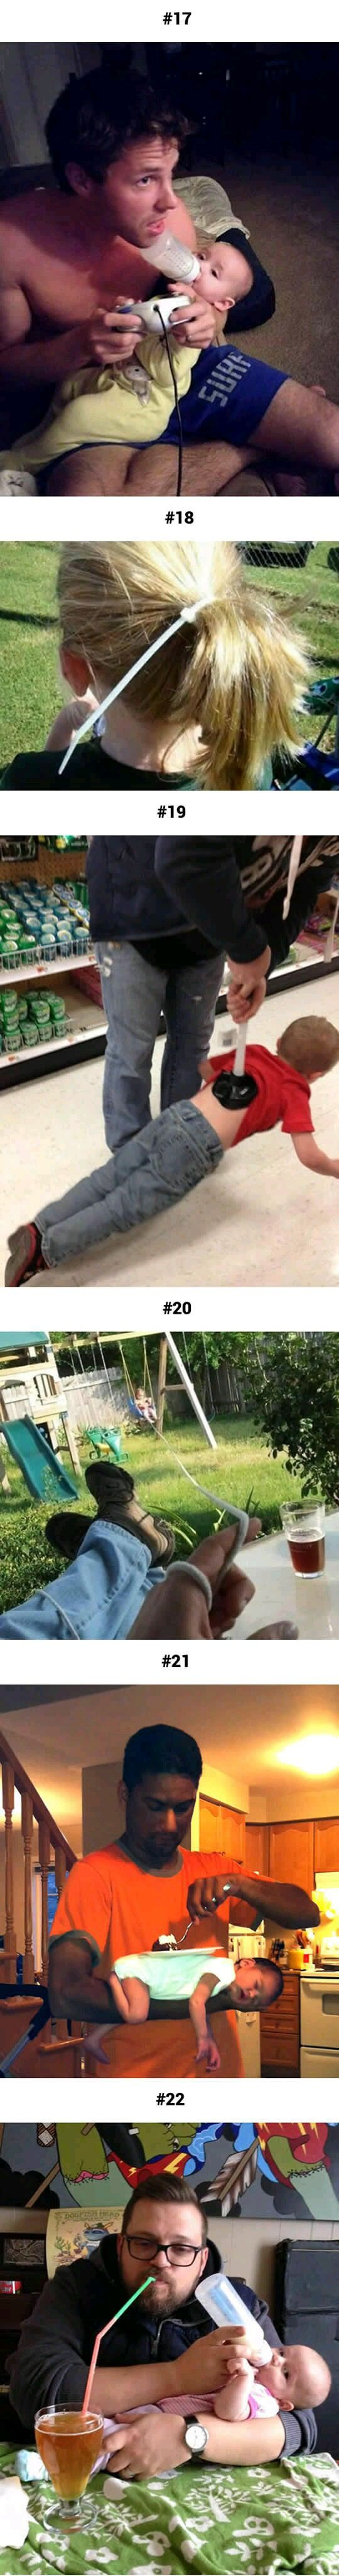 Best Funny Dad Memes Ideas On Pinterest Funny Jokes With - 27 dads totally nailed whole parenting thing